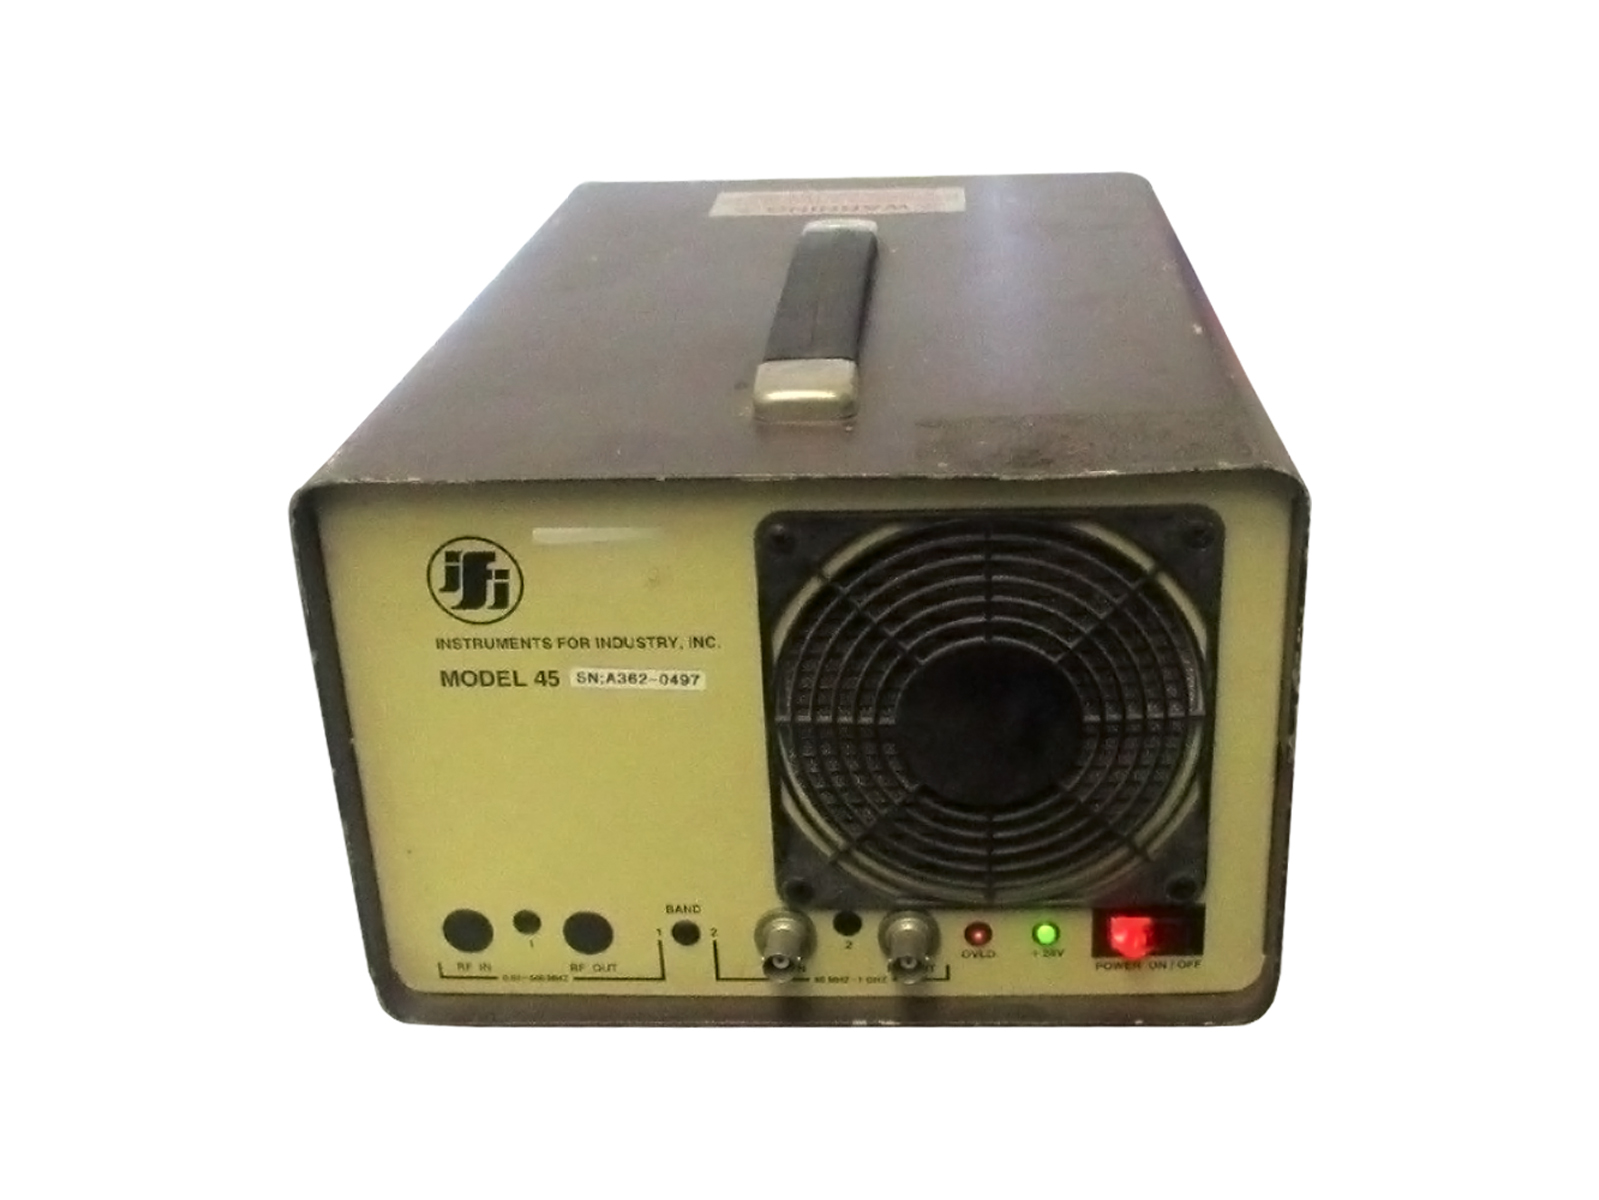 instruments-for-industry-ifi-m-series-solid-state-rf-amplifier-model-45-0.jpg